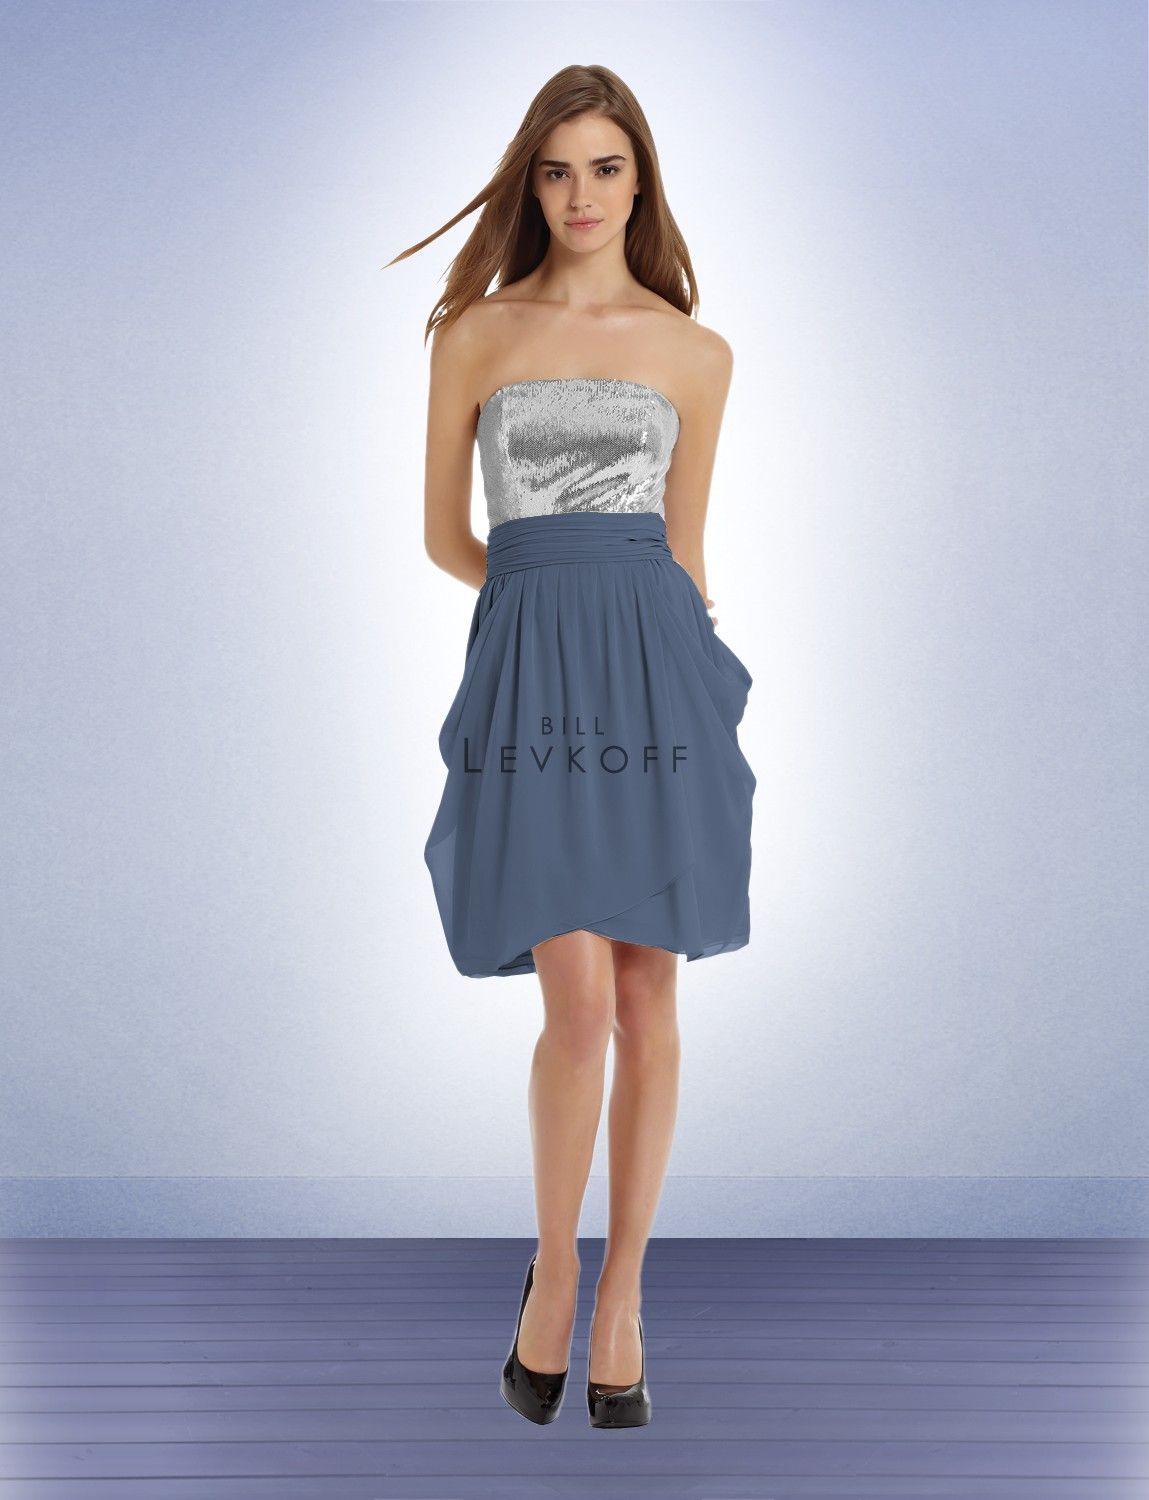 Bill levkoff bridesmaid dress style this but with a plain